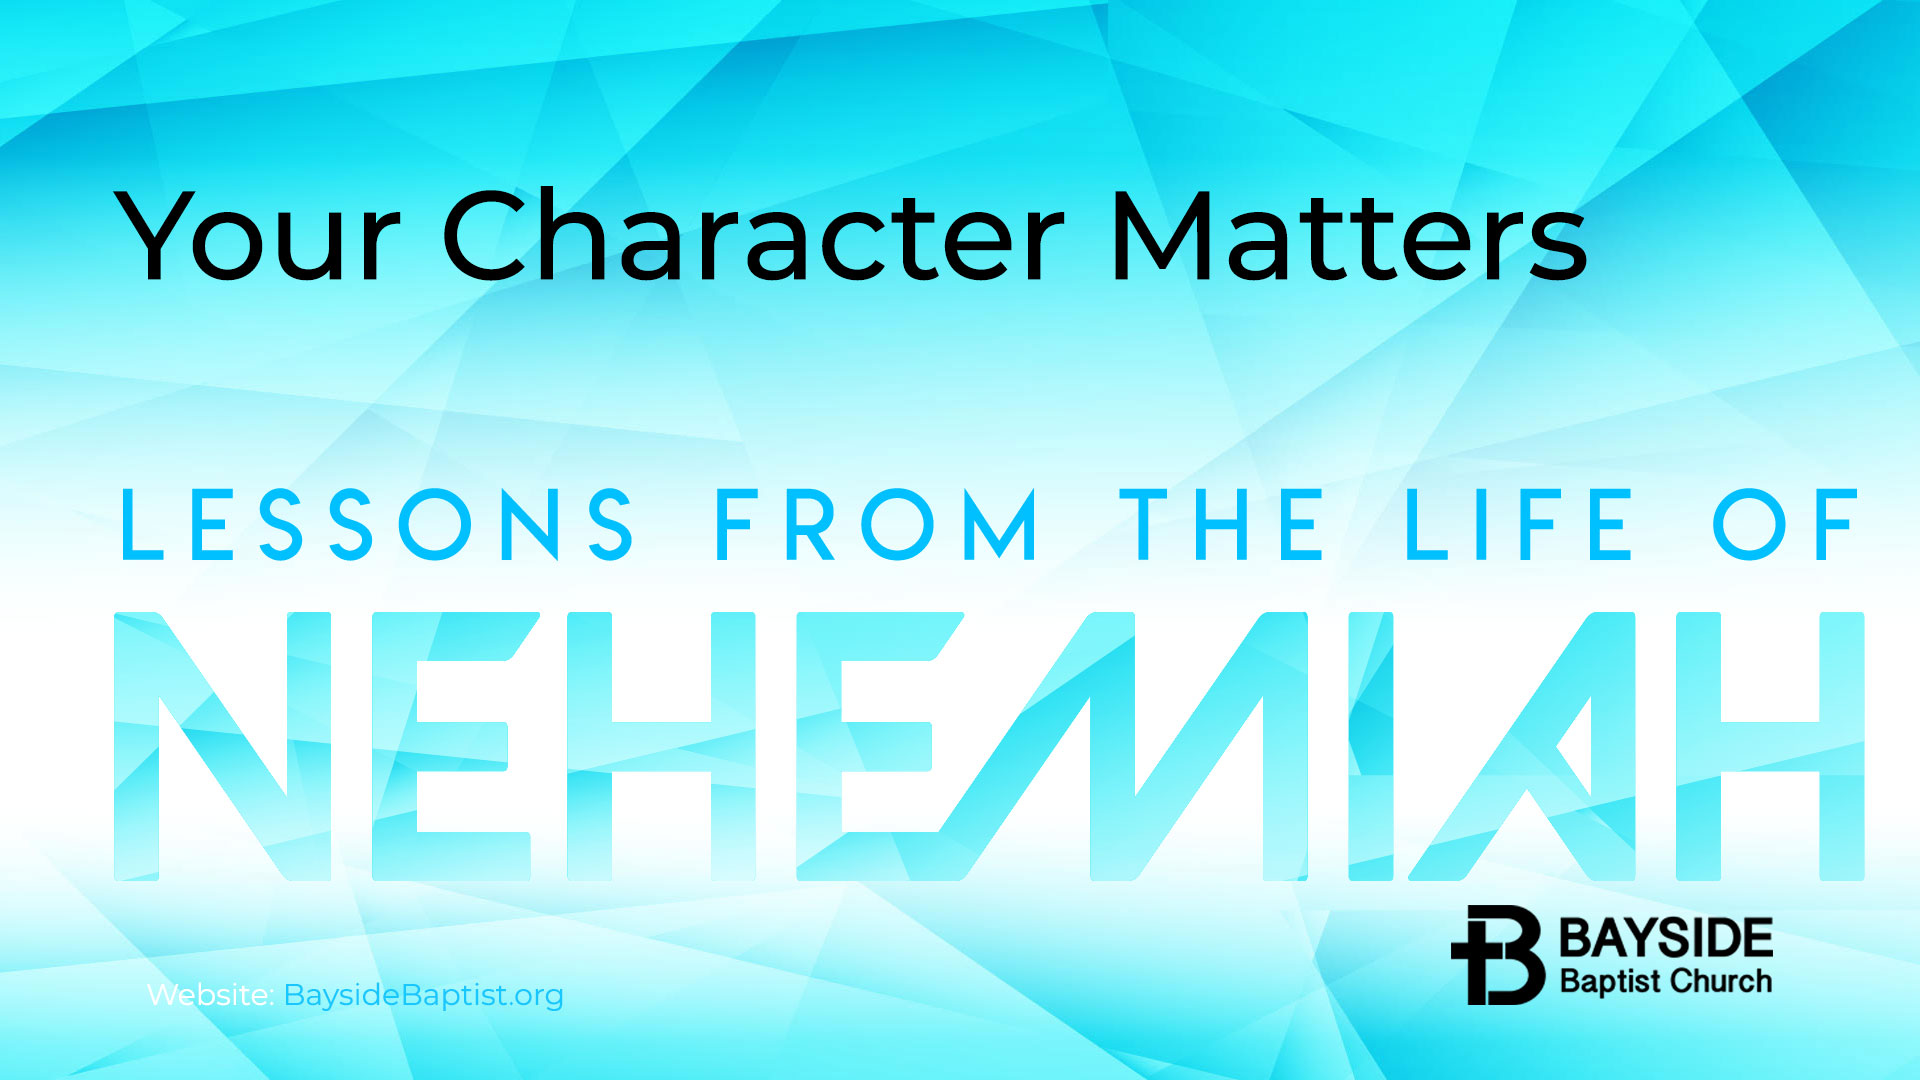 Your Character Matters Image